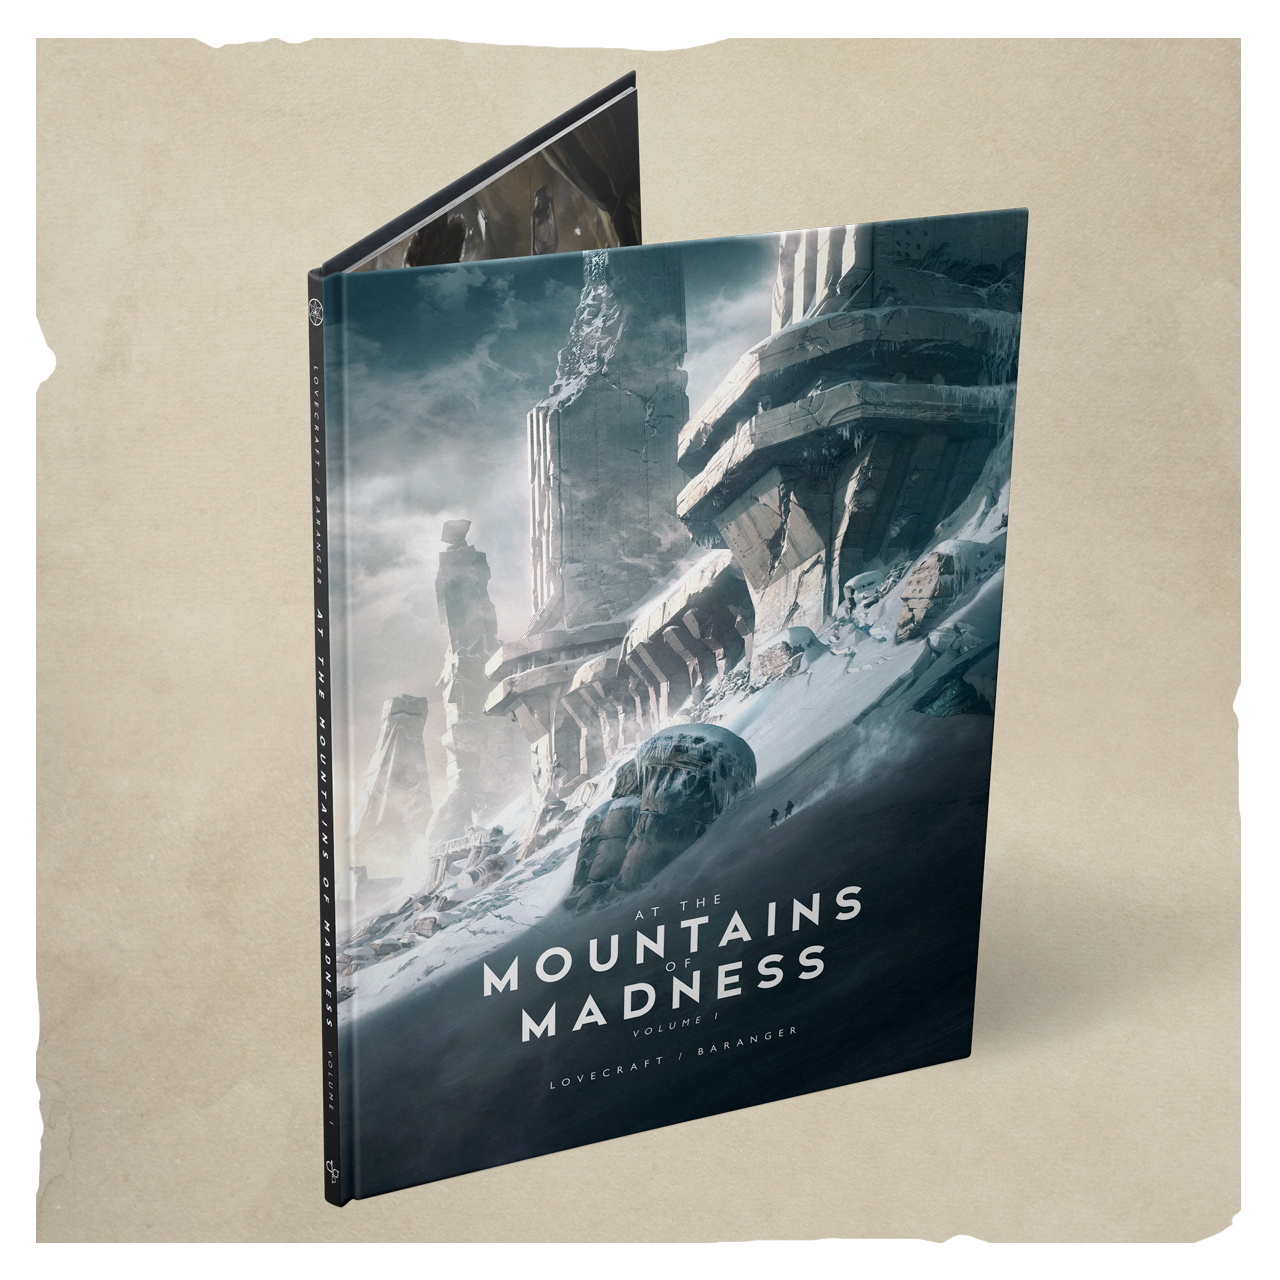 AT THE MOUNTAINS OF MADNESS ART BOOK